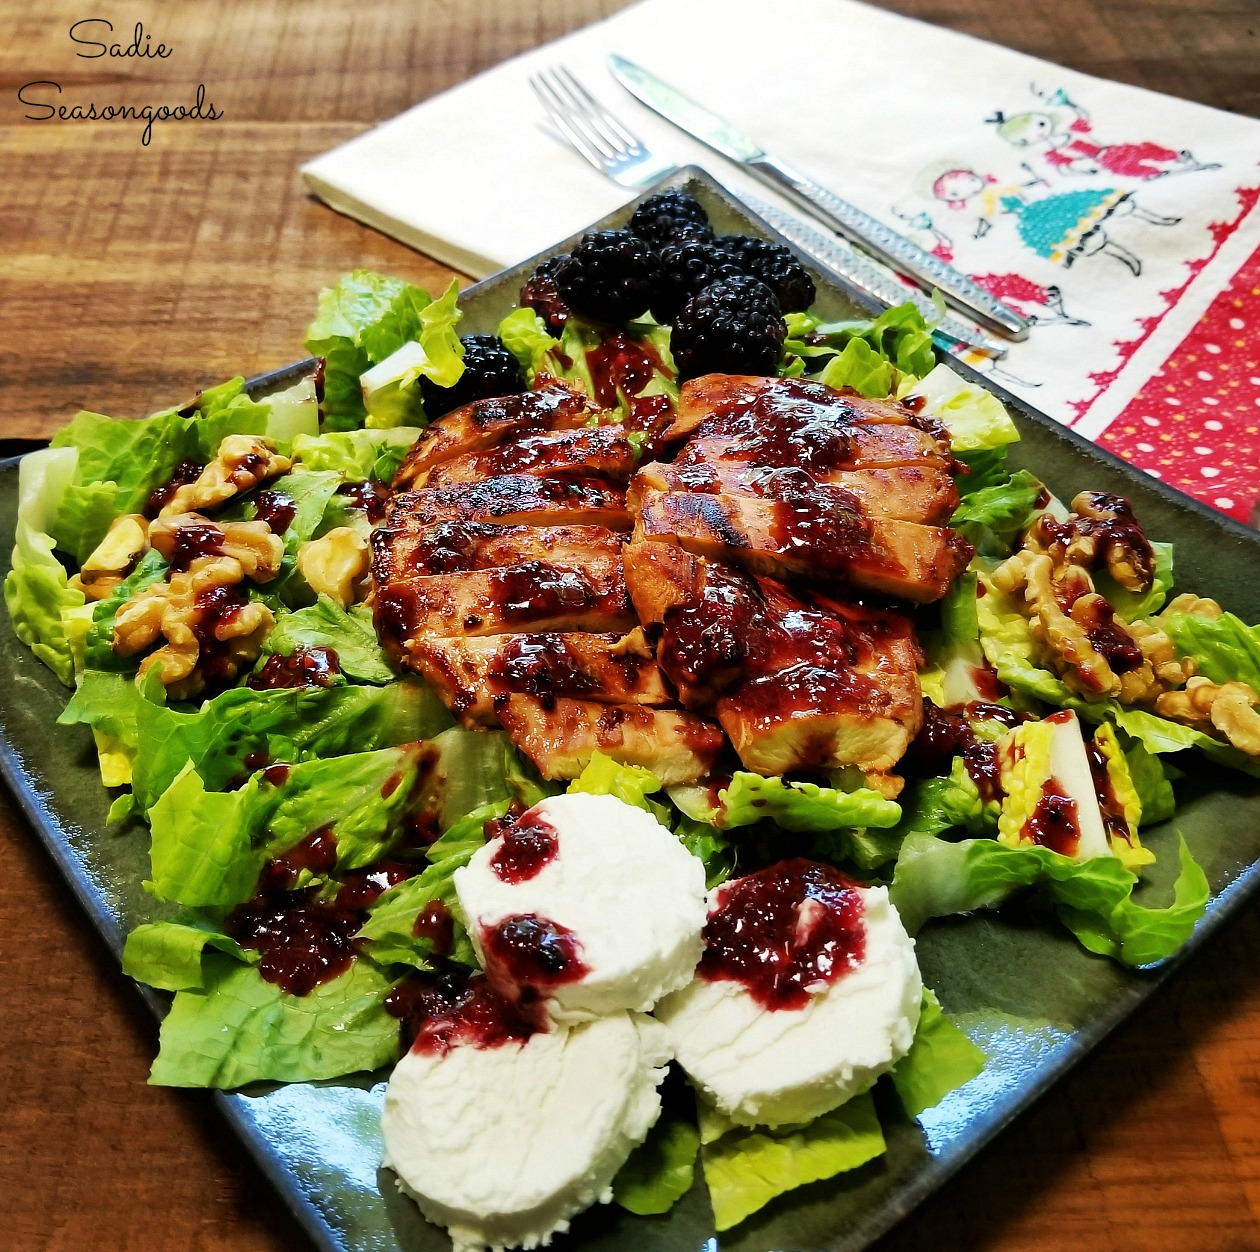 Salad with fruit - blackberry chicken salad using a recipe by ClosetCooking - photo by Sadie Seasongoods